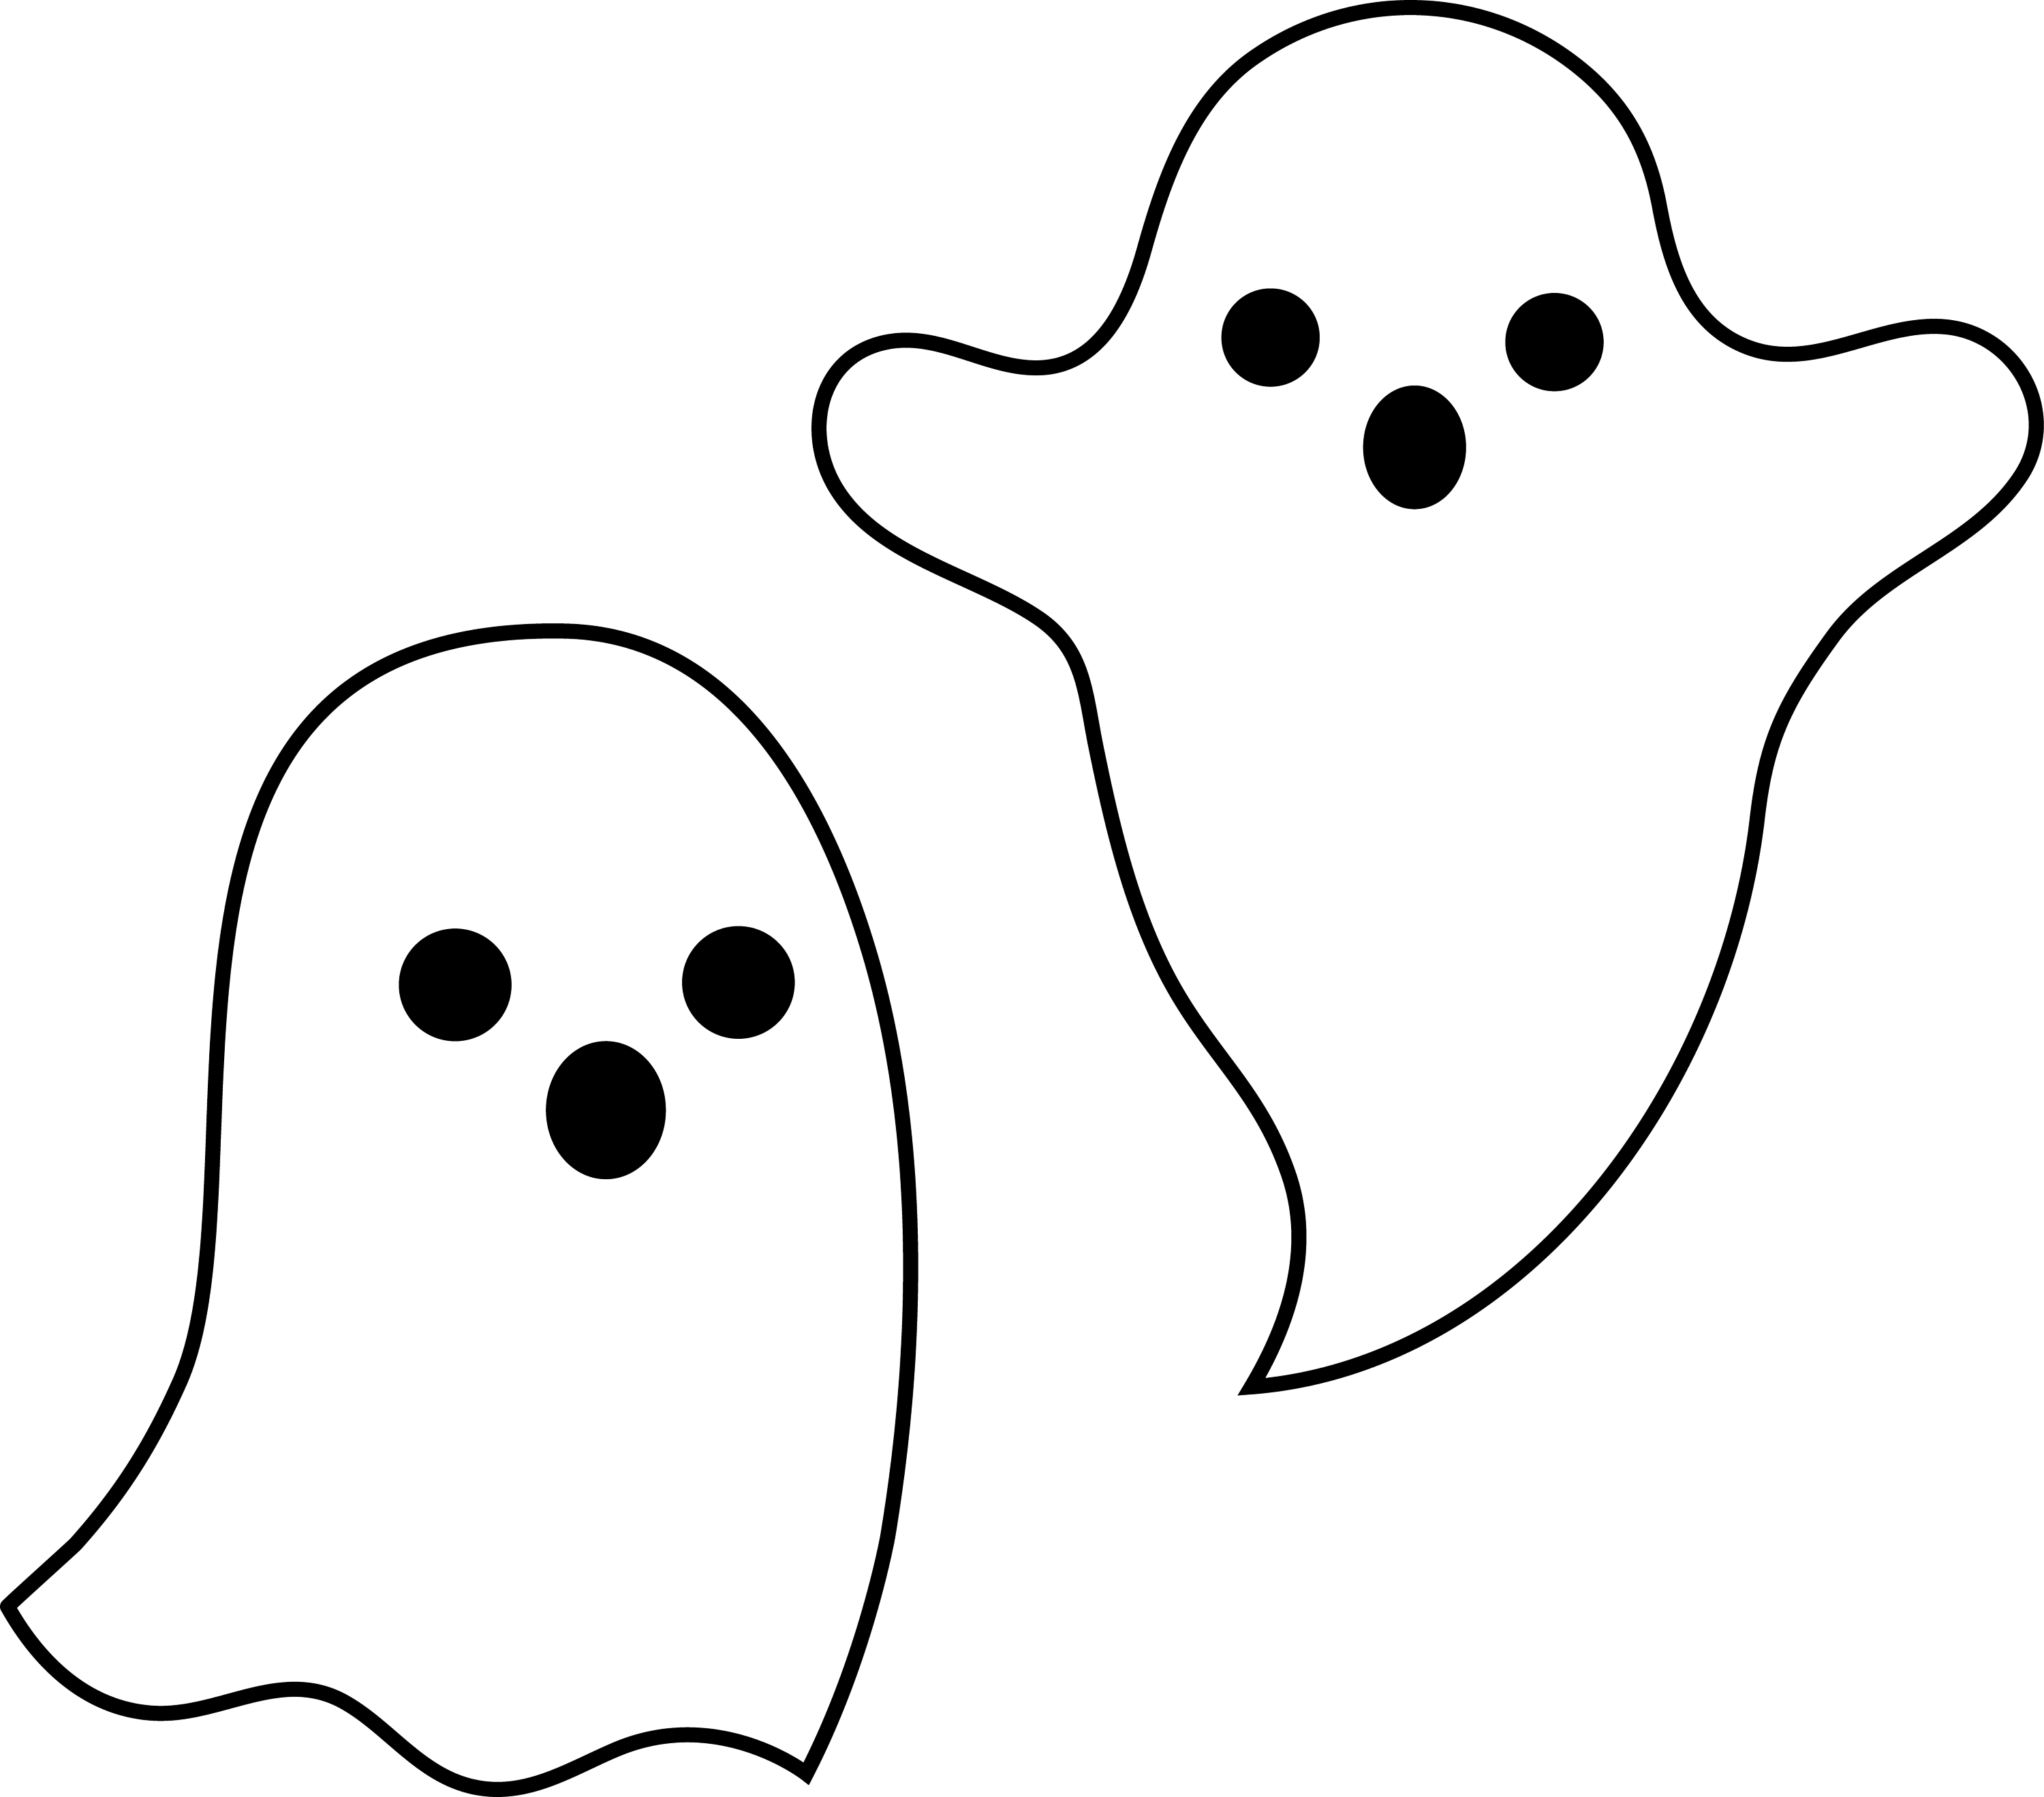 Simple Spooky Halloween Ghosts - Free Clip Art